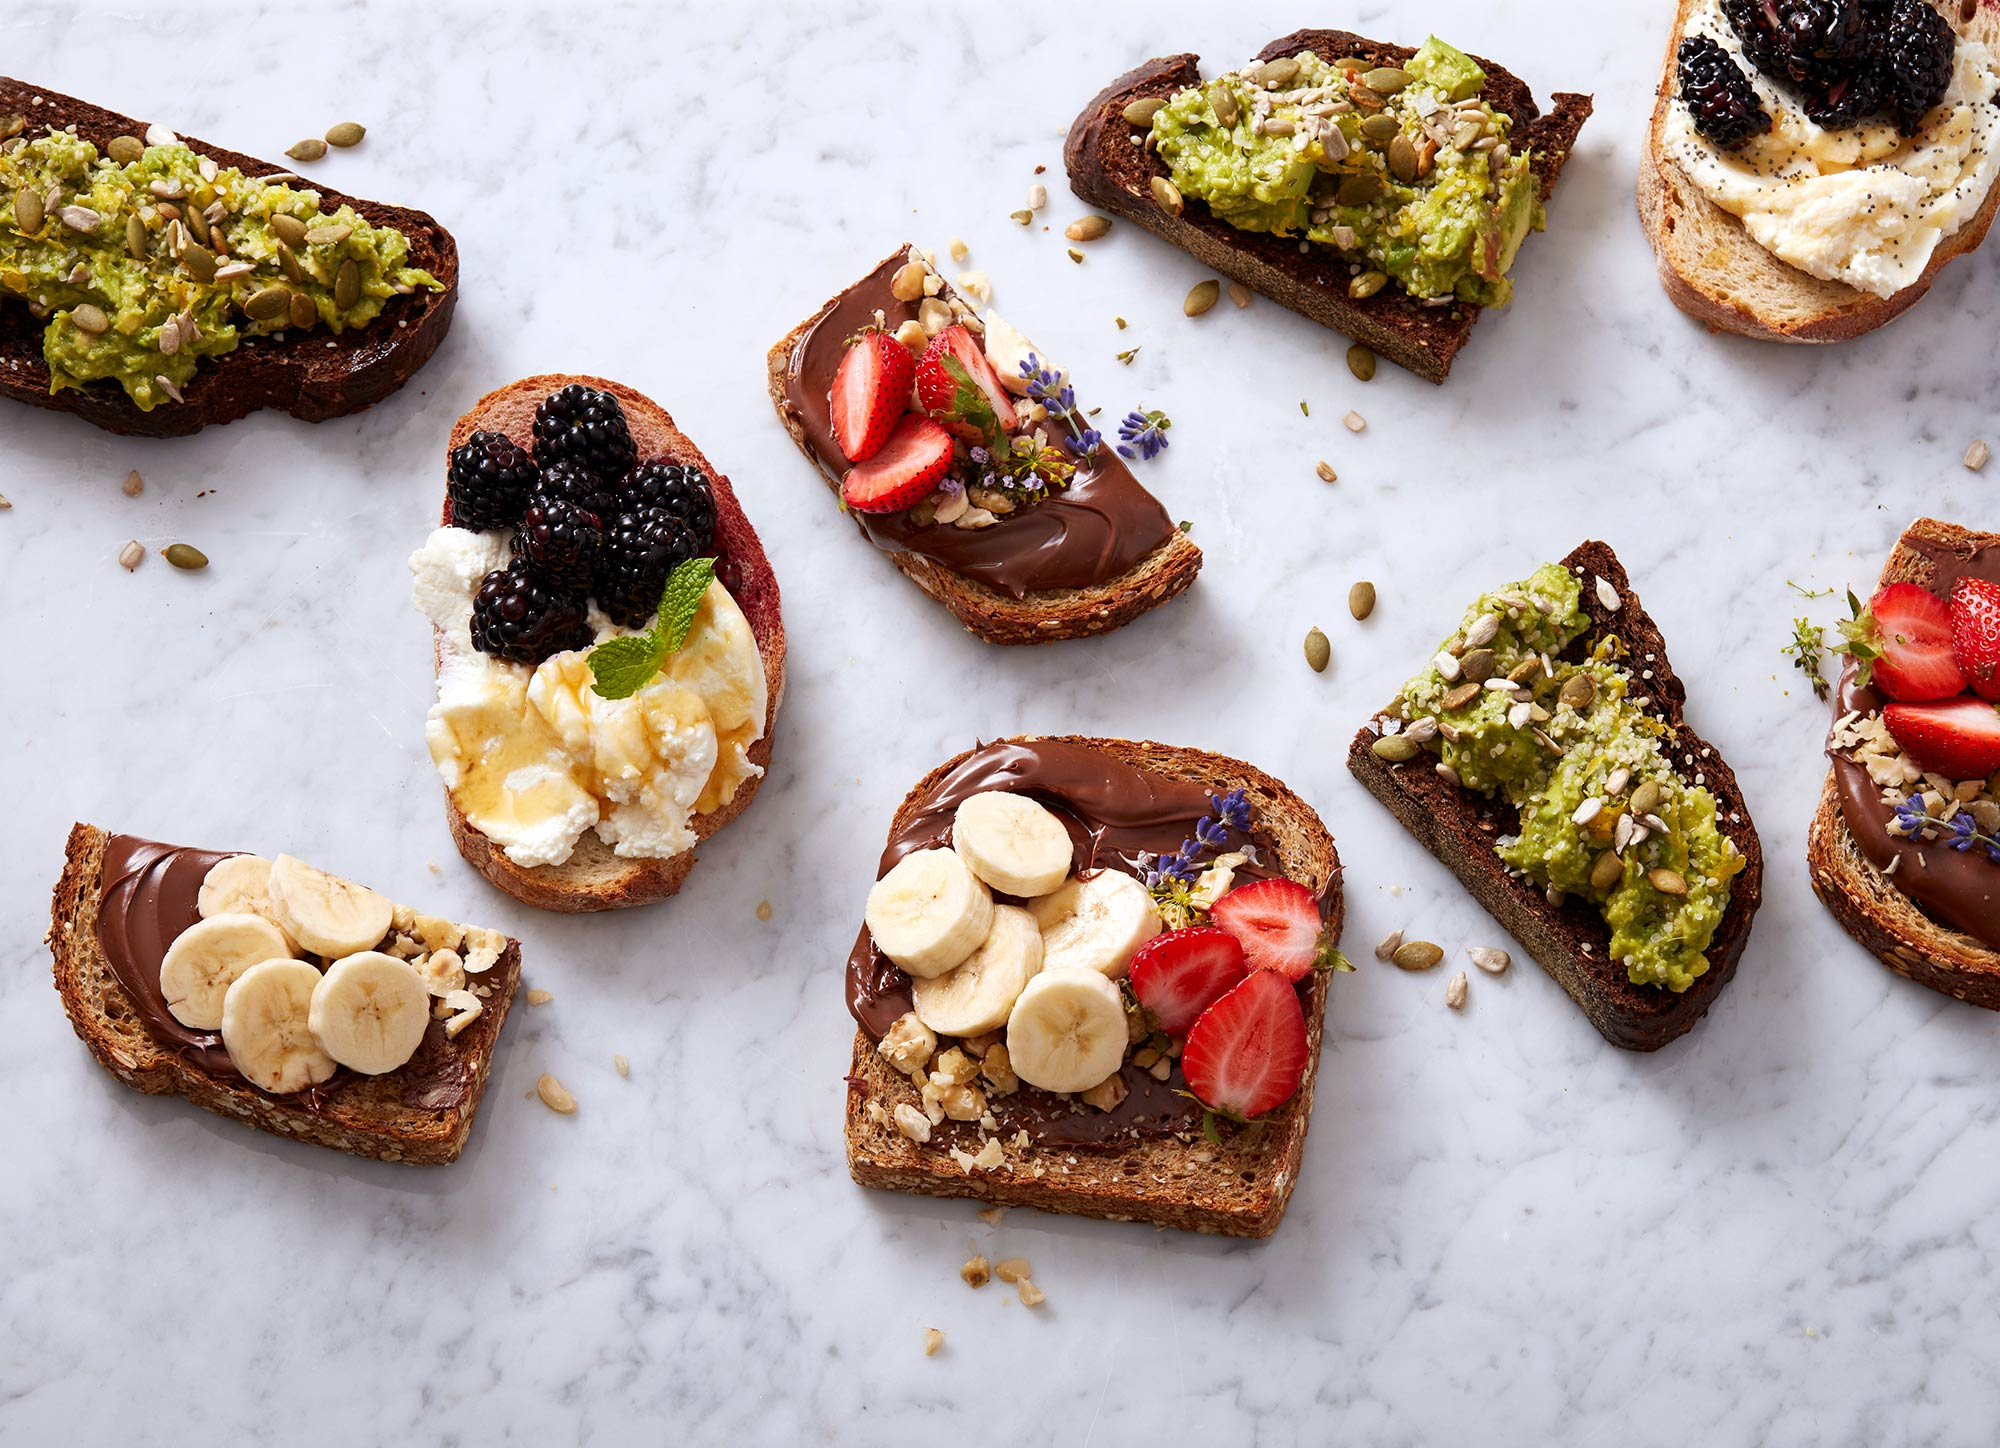 food photography showing different toast options for breakfast